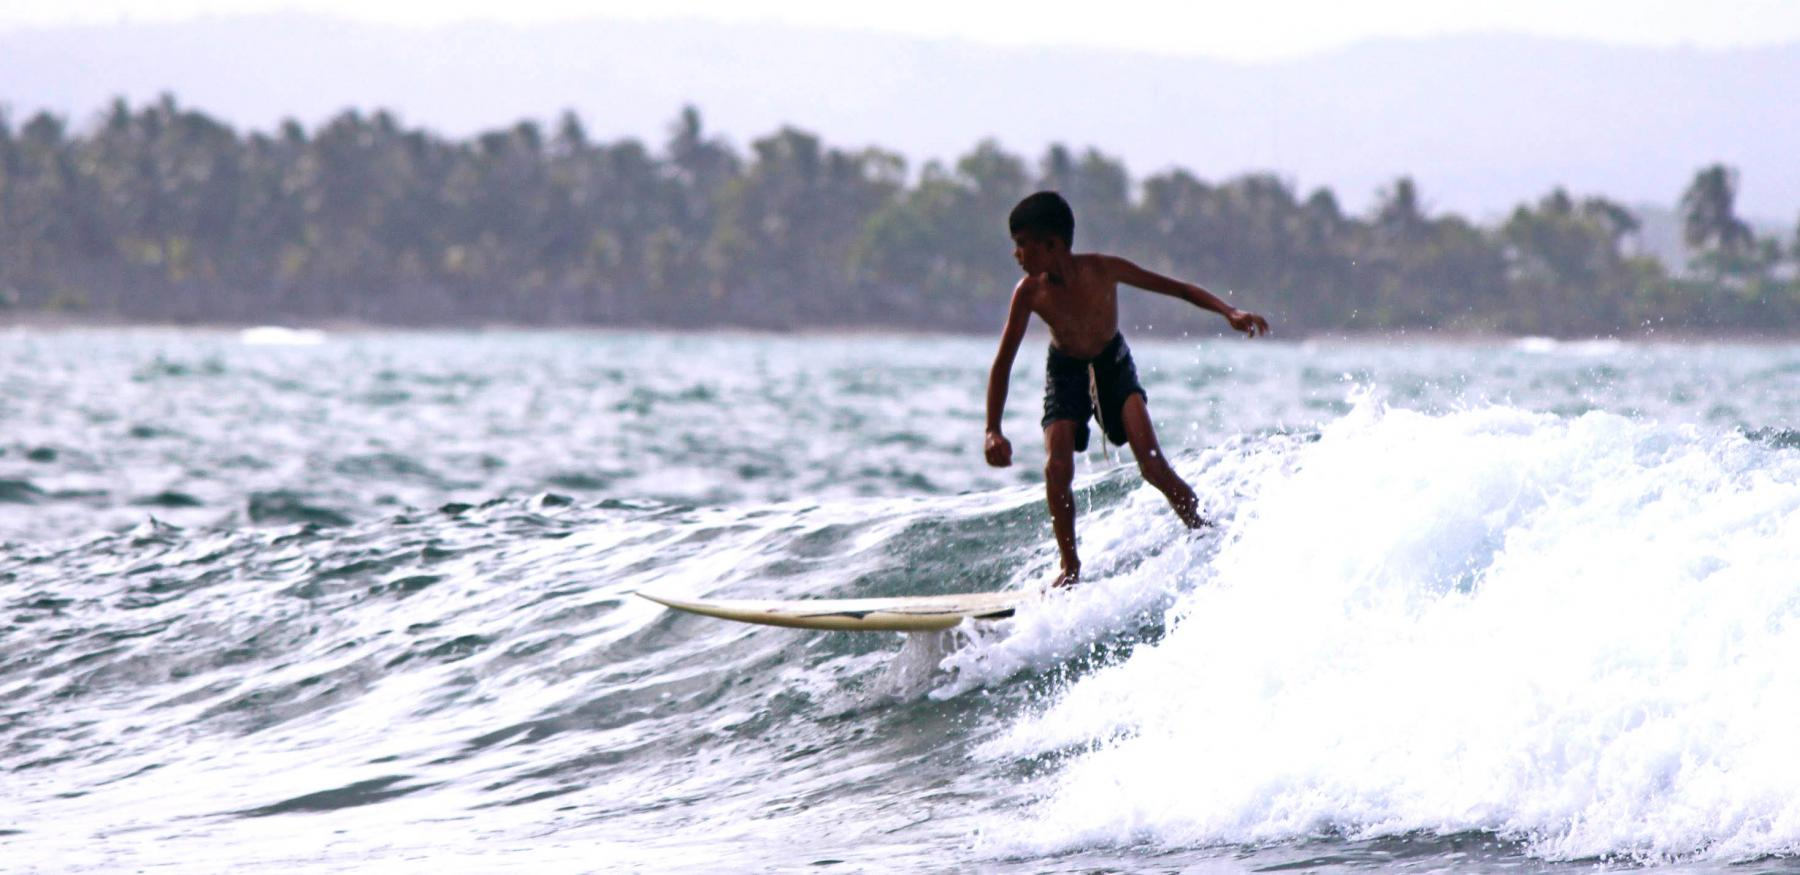 5D4N off the beaten path: Learn to surf in a small fishing village on Java -Aug starting at Batu Karas Surf Spot, Batukaras, Pangandaran Regency, West Java, Indonesia